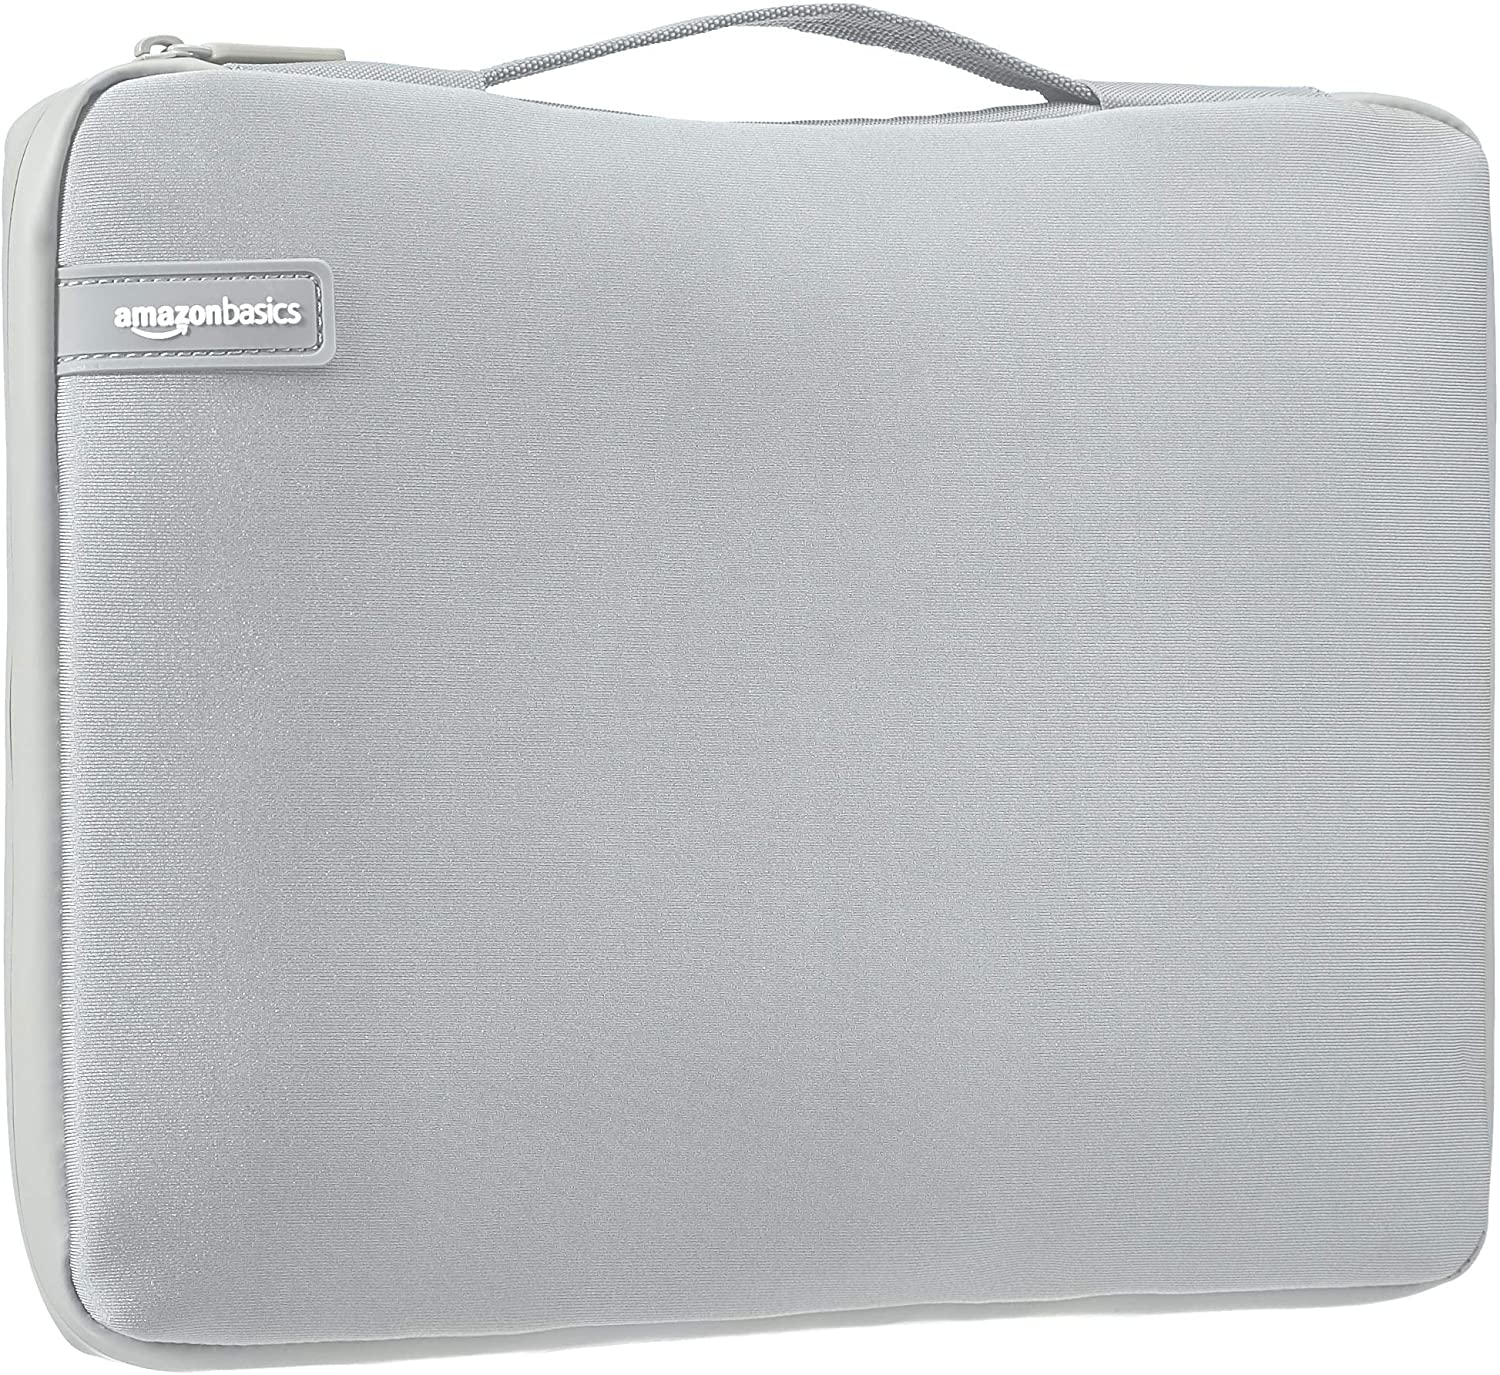 "AmazonBasics 13.3"" Professional Laptop Case Sleeve Bag (With Retractable Handle) - Grey"